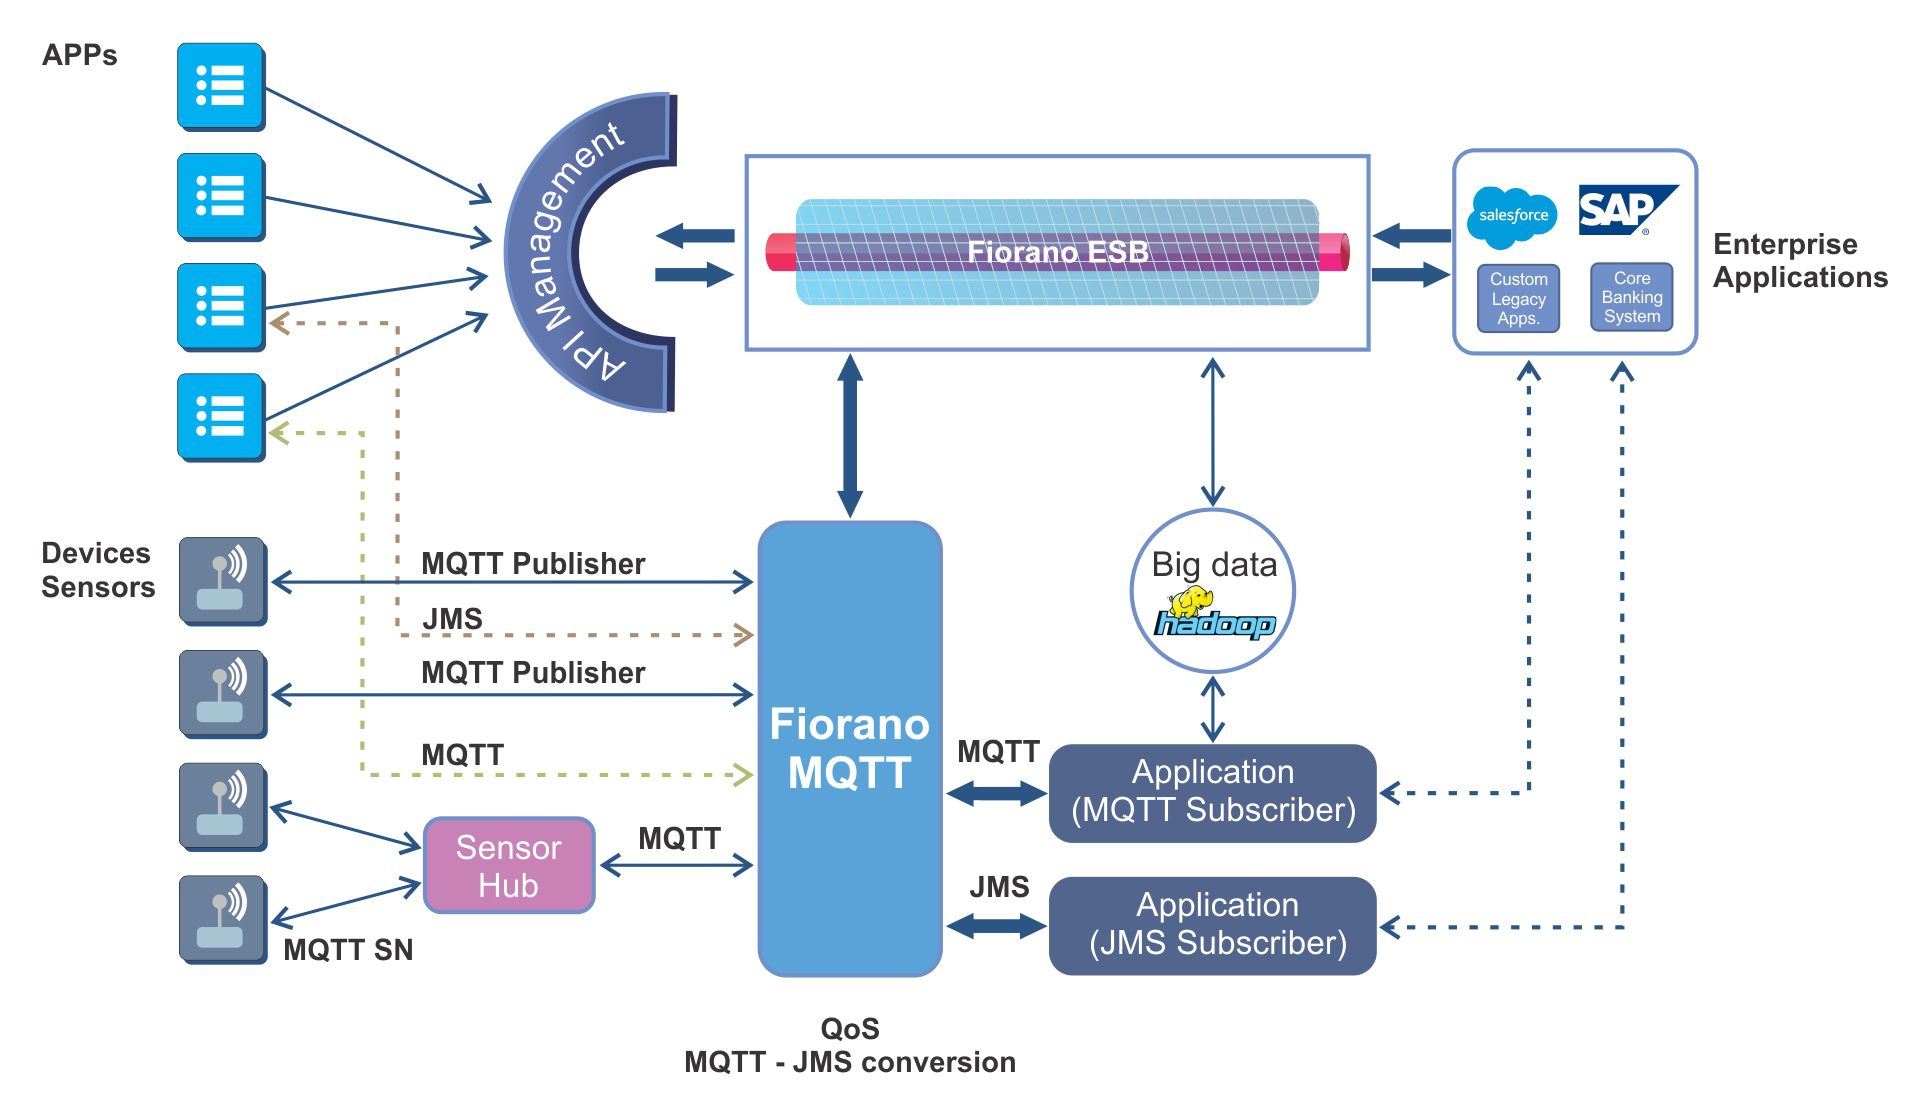 Fiorano MQTT | JMS messaging-based ESB with linear, build-as